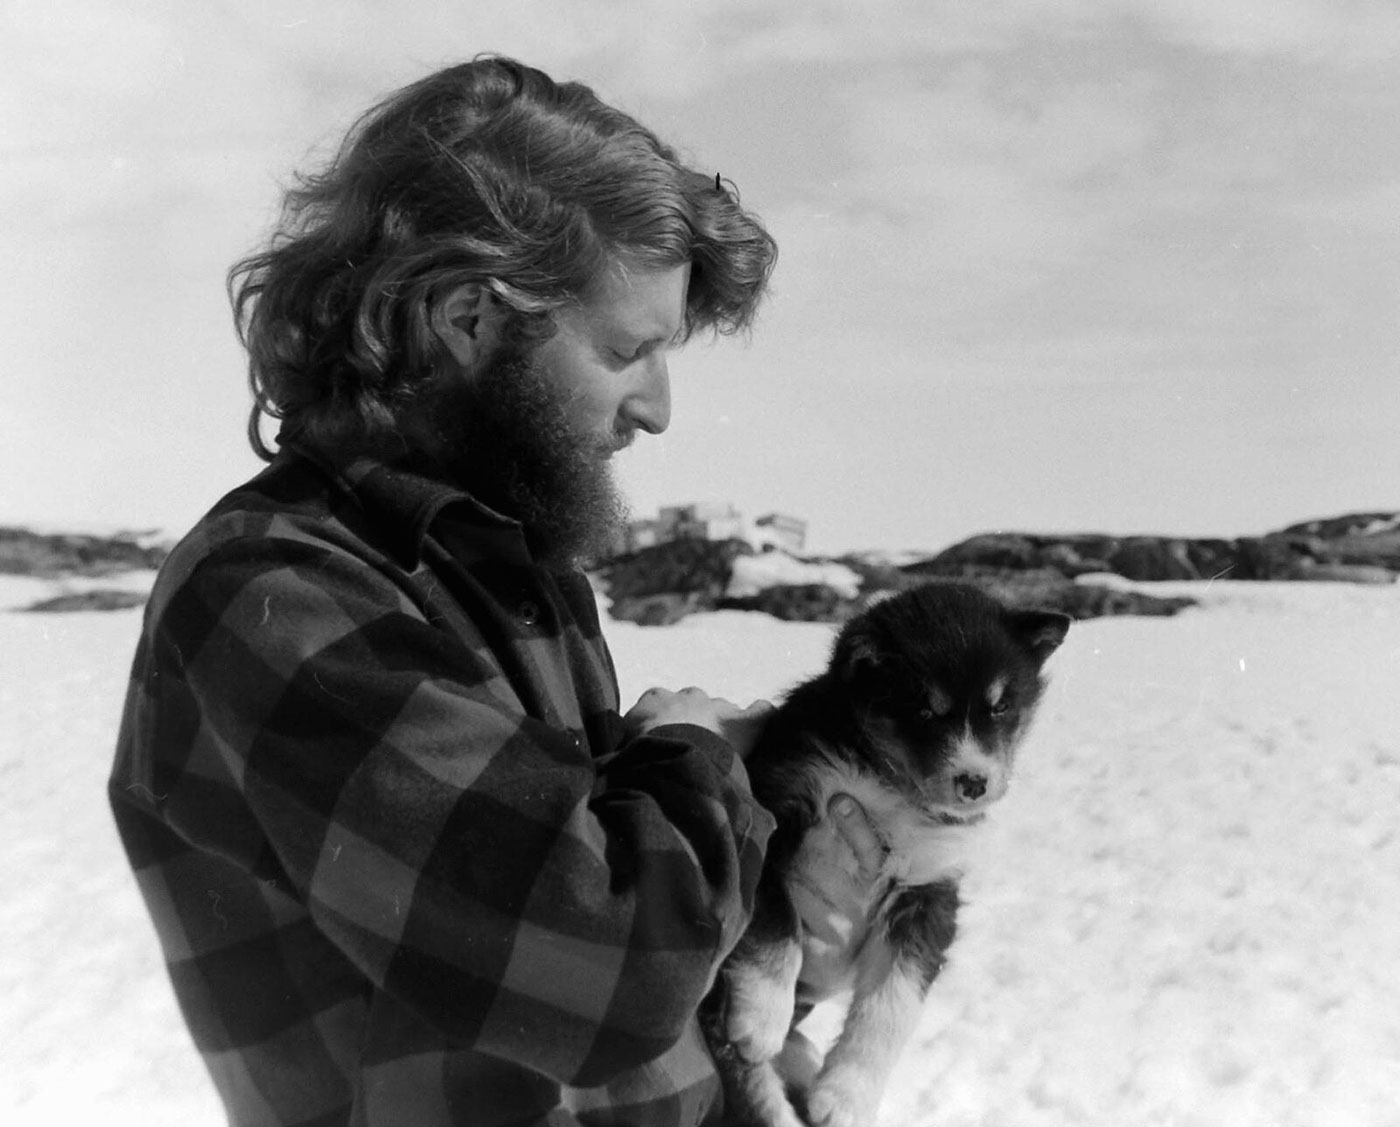 Black and white photograph of a man holding a husky pup.